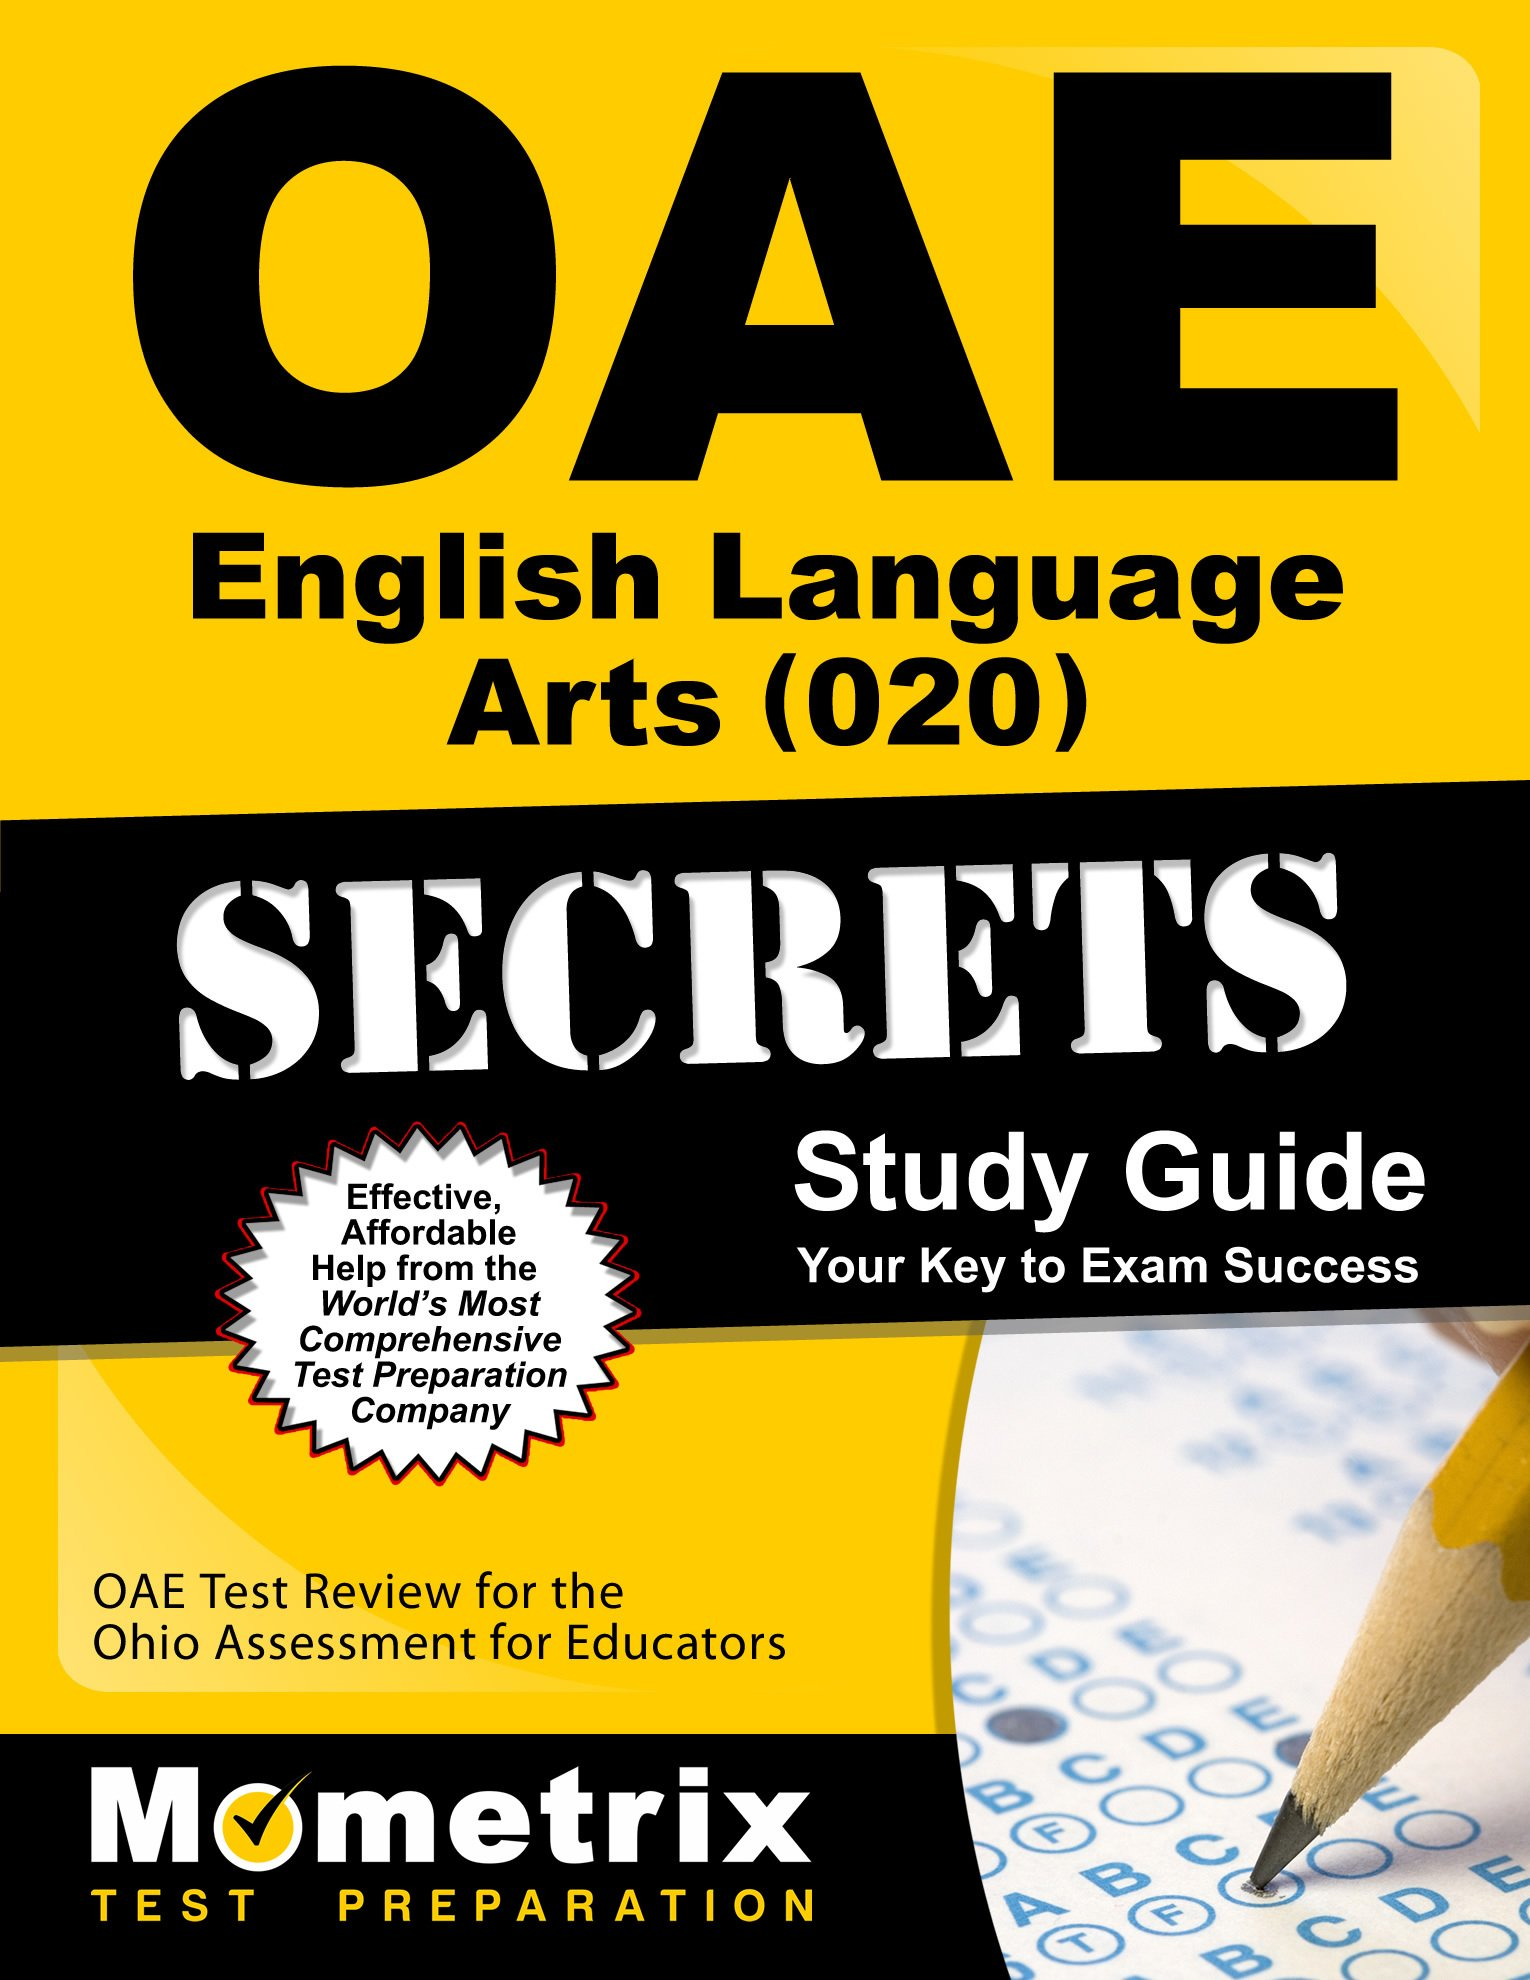 OAE English Language Arts (020) Secrets Study Guide: OAE Test Review for the Ohio Assessments for Educators by Mometrix Media LLC